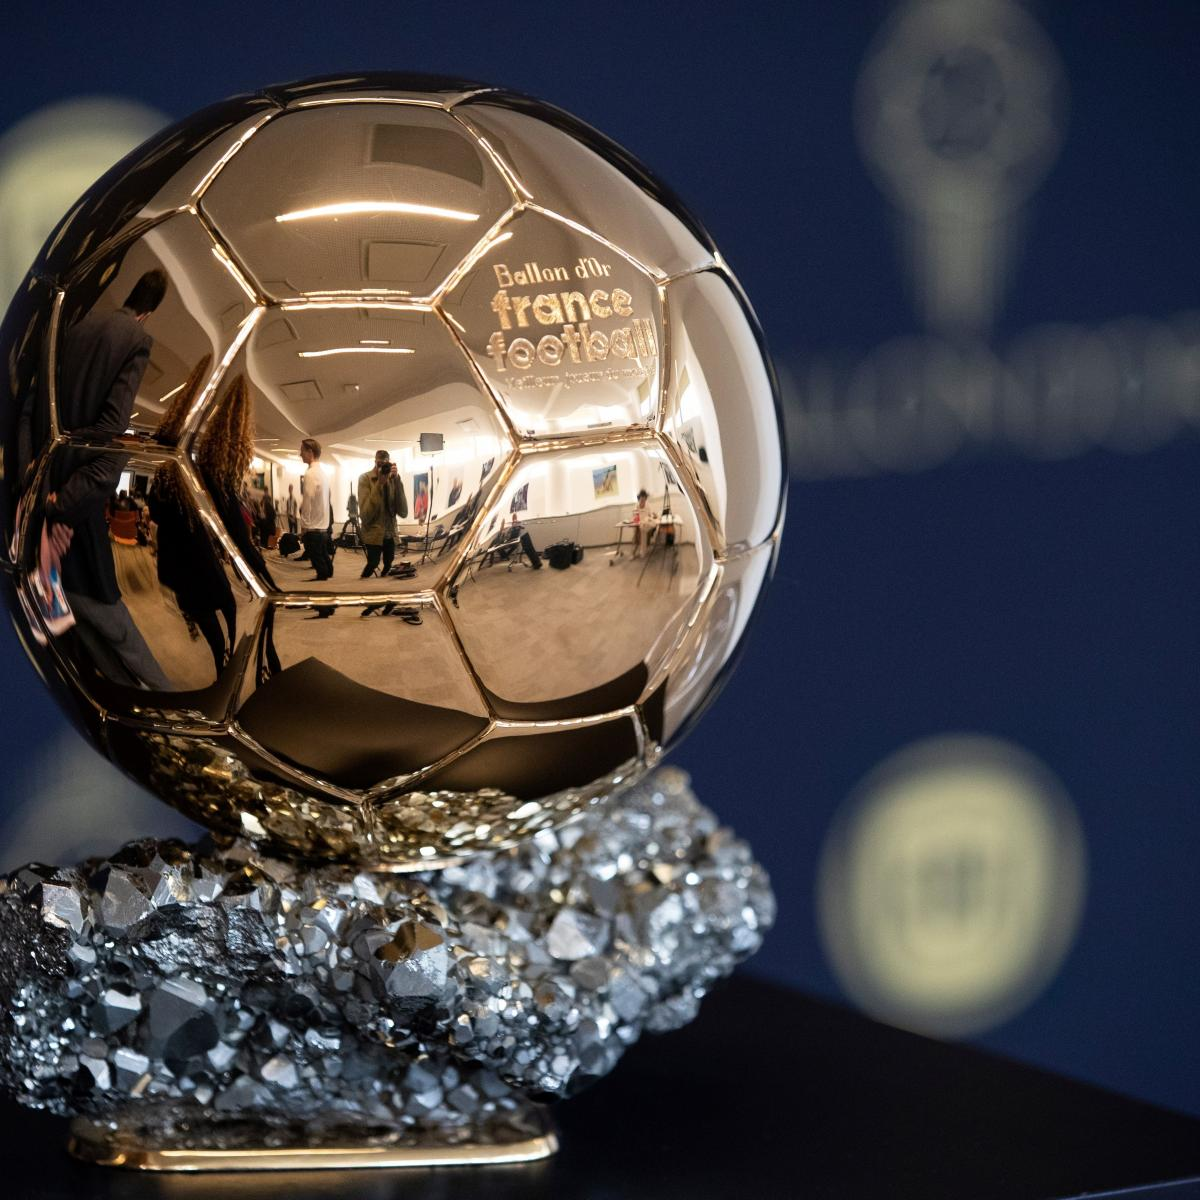 This year's winner of the Ballon d'Or will have very intense competition to win the award.